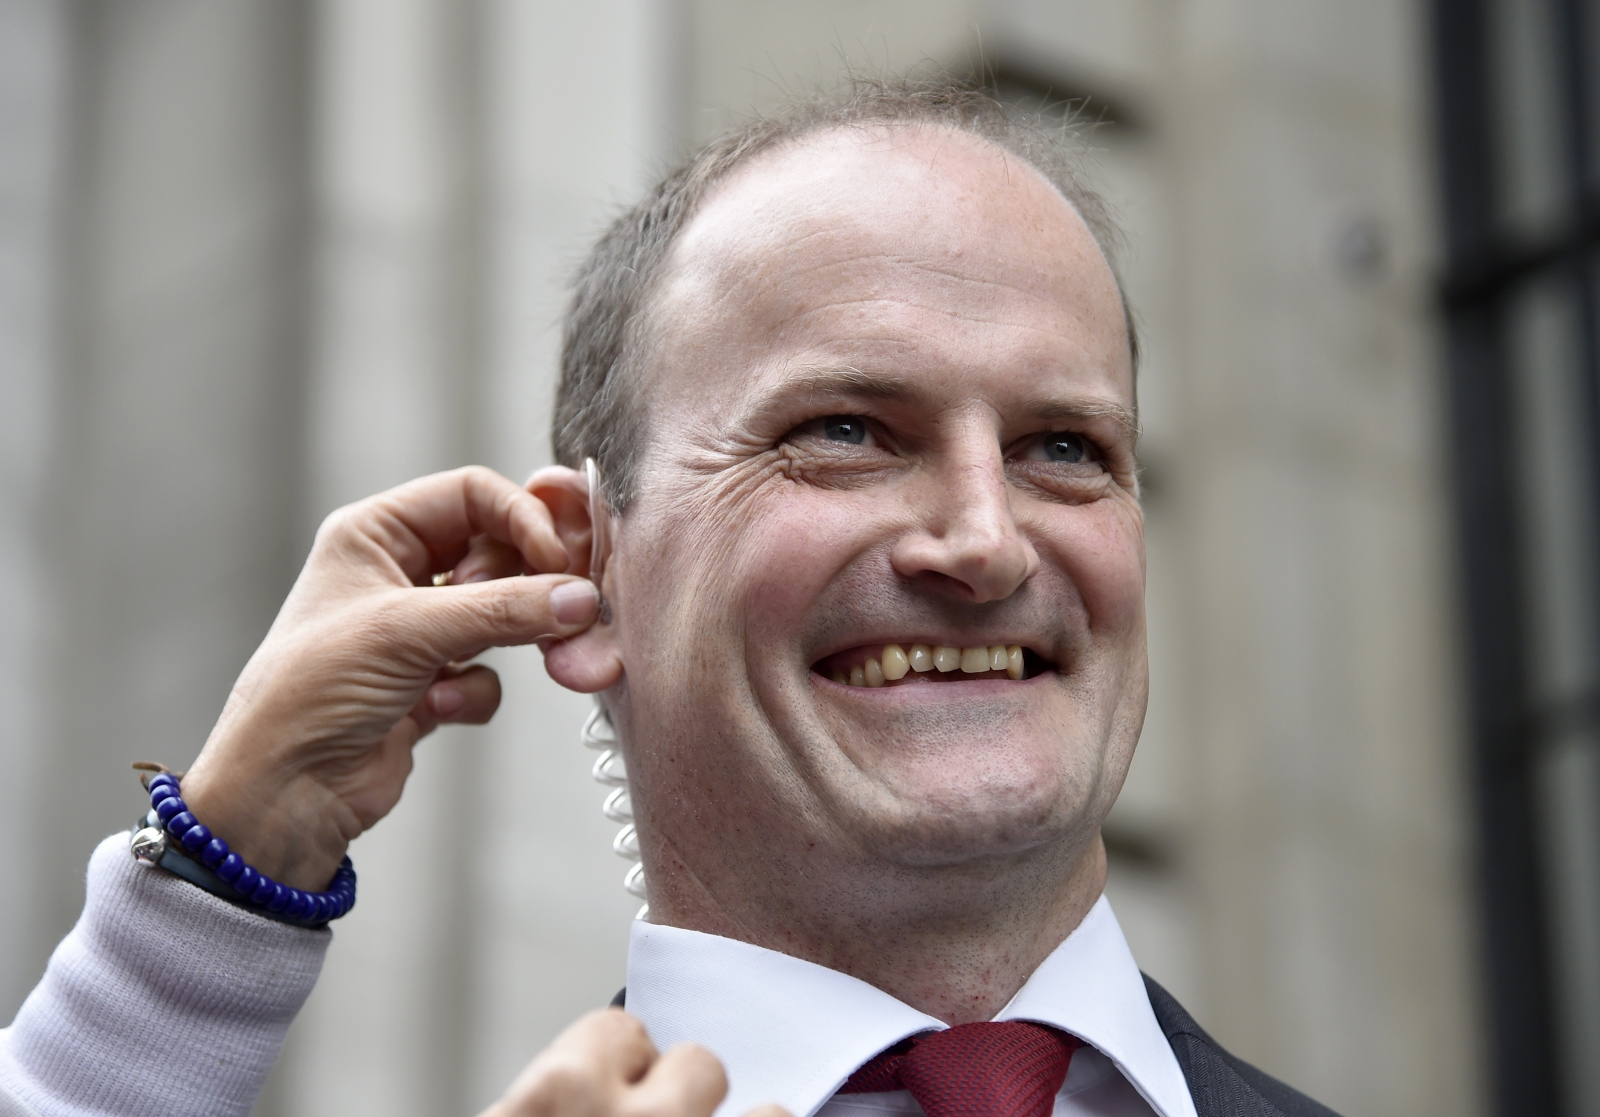 Douglas Carswell failed to escape expenses scandal which rocked parliament by claiming hundreds for a 'love seat'